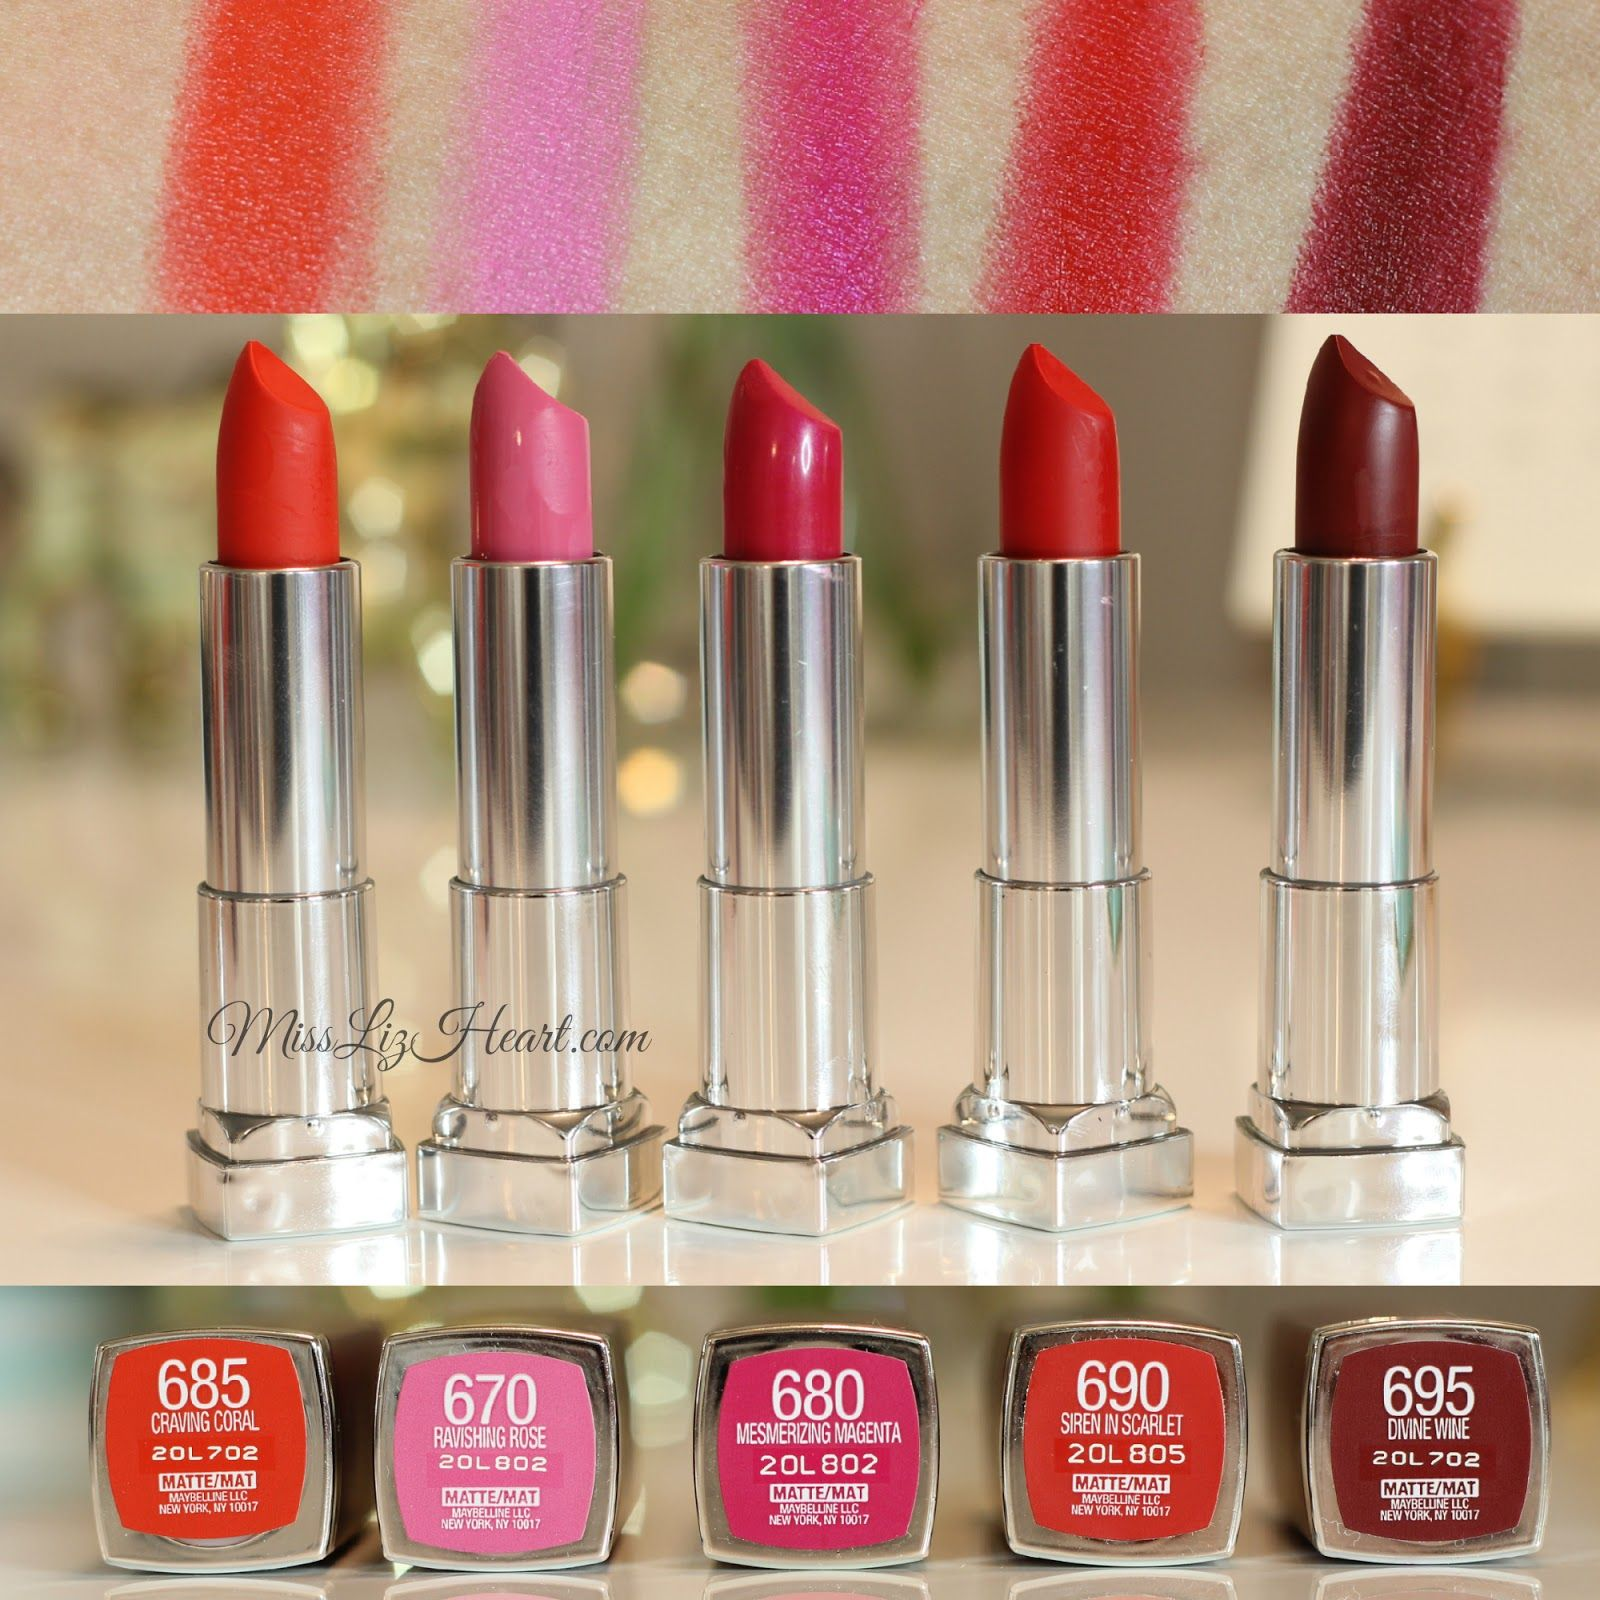 80fd8cad293 The Bolder Shades from the New Maybelline Color Sensational Creamy Matte  Lipstick Swatches